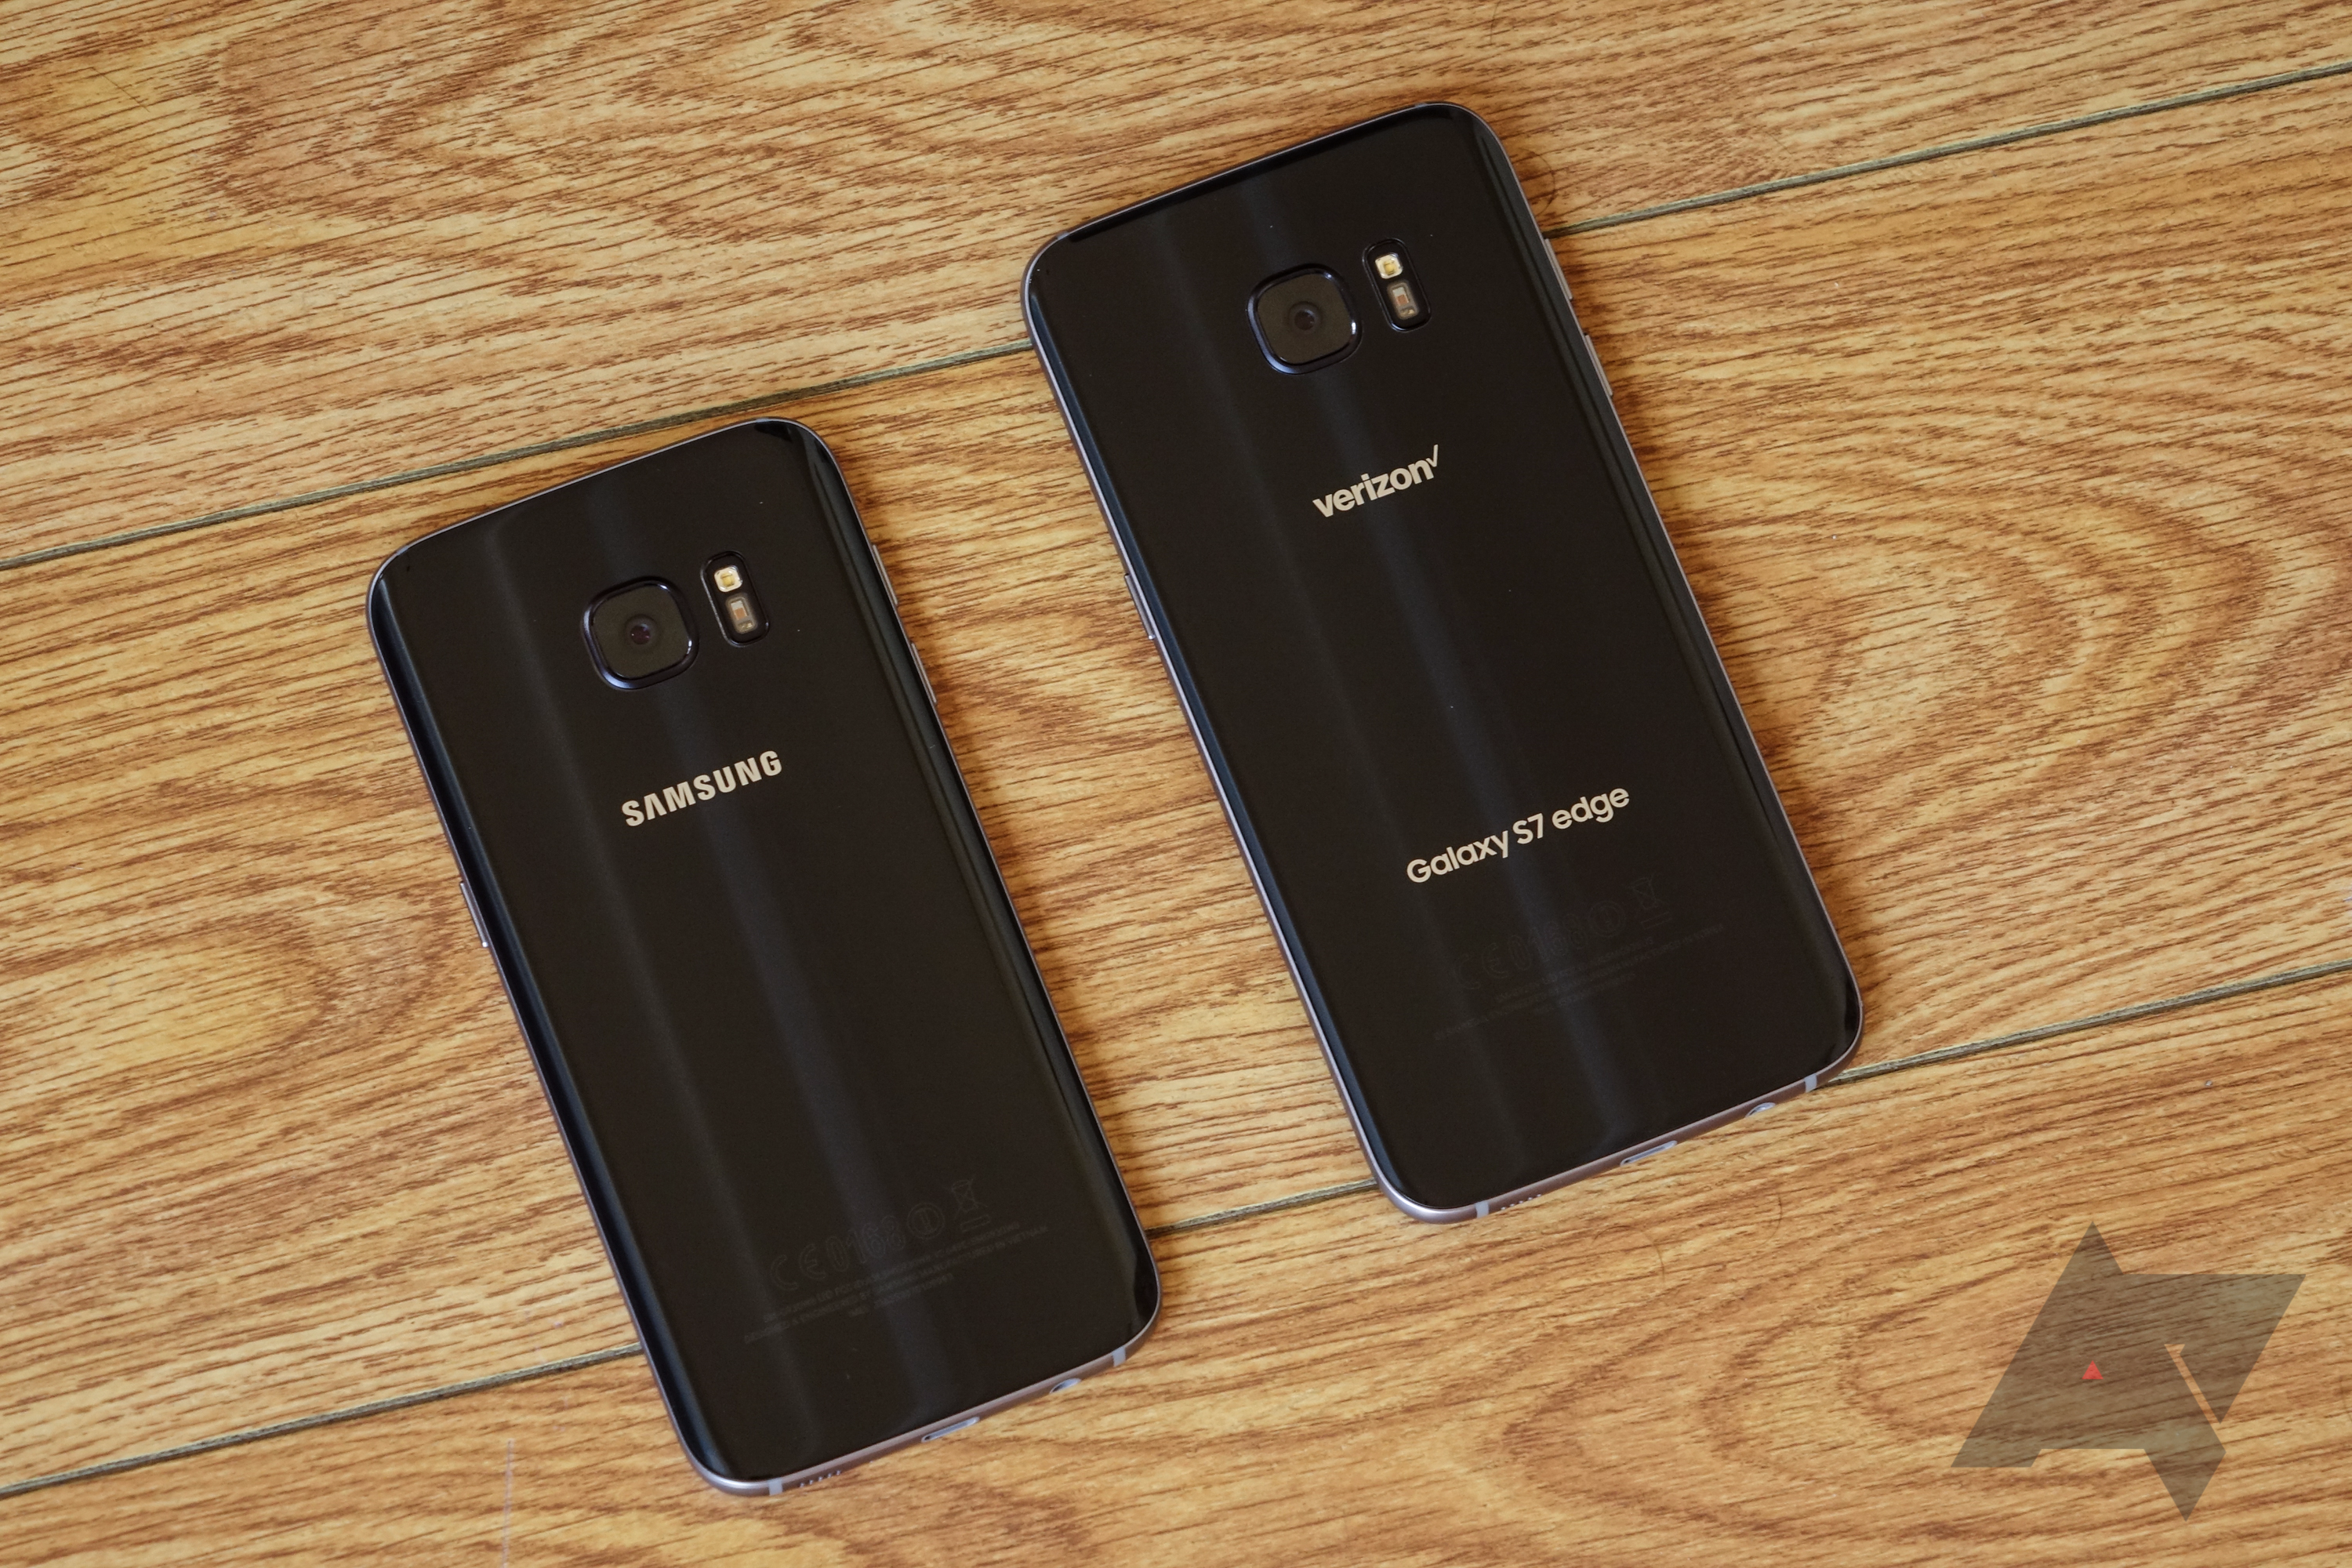 Verizon's Galaxy S7 and S7 edge are now receiving their official Nougat  updates